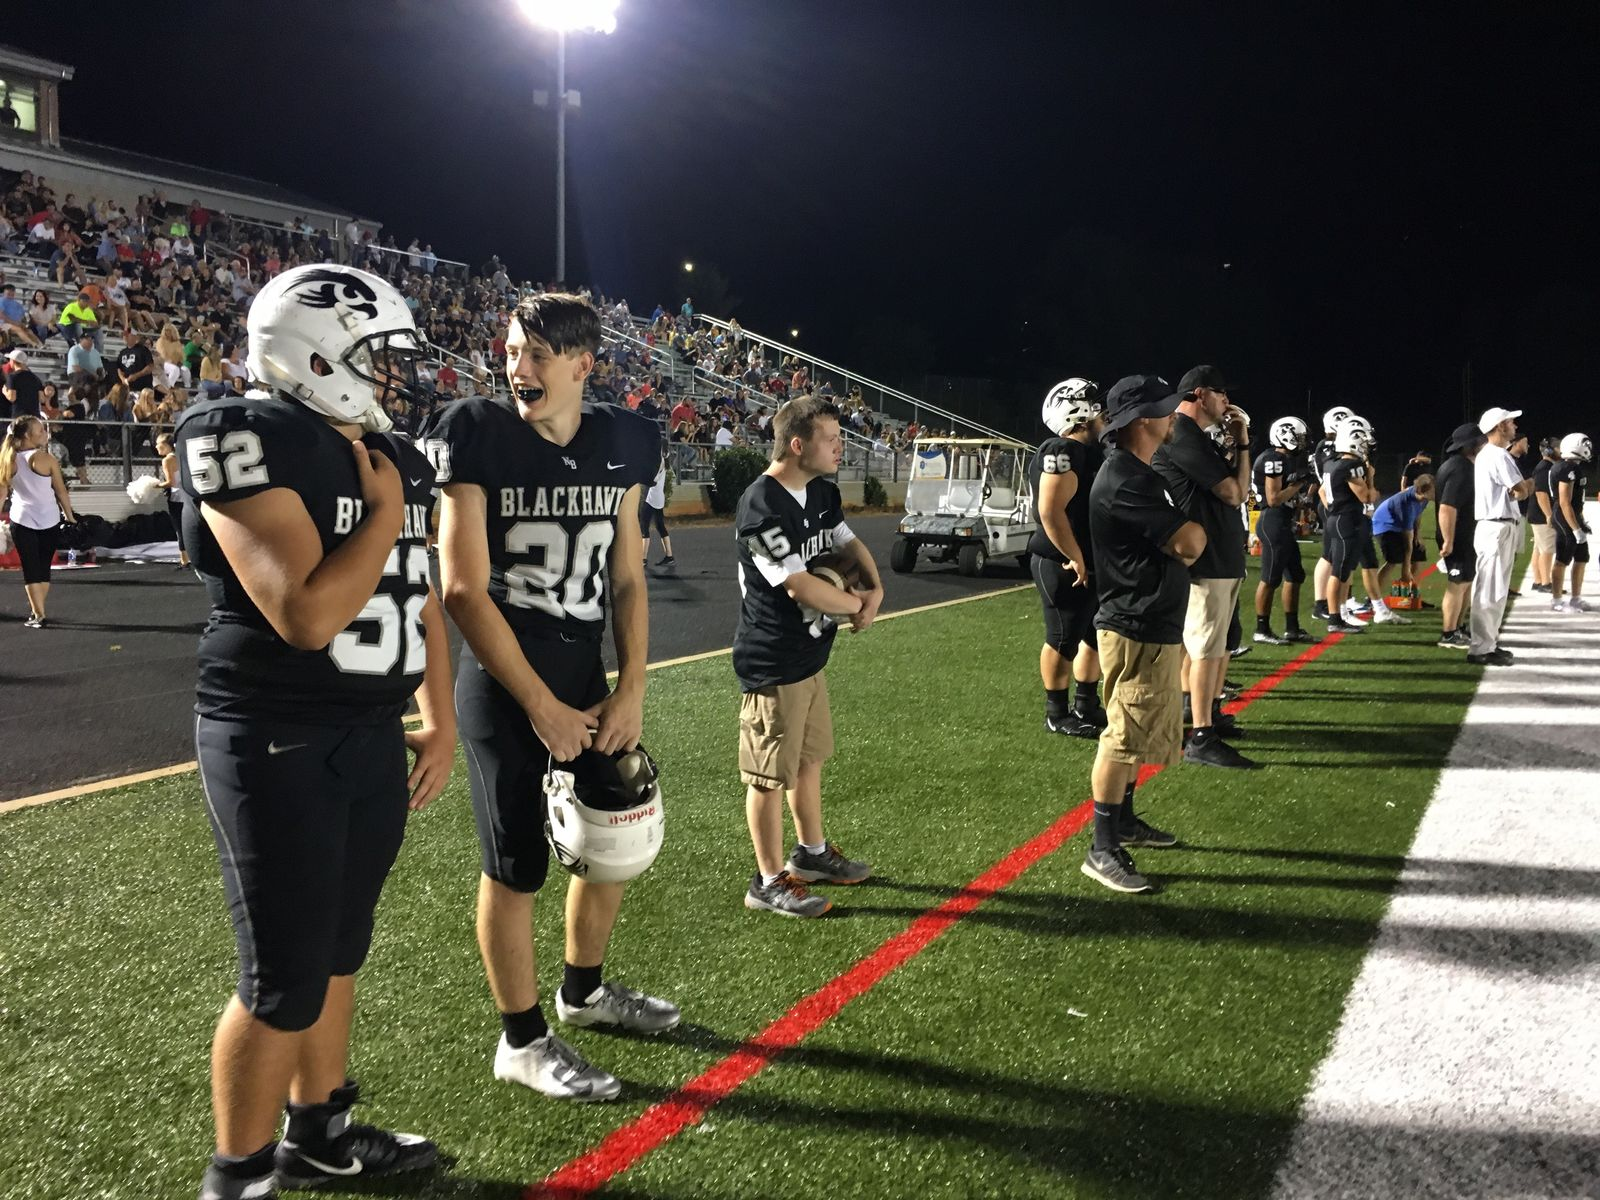 North Henderson vs Hendersonville, 08-23-19 (Photo credit: WLOS Staff)